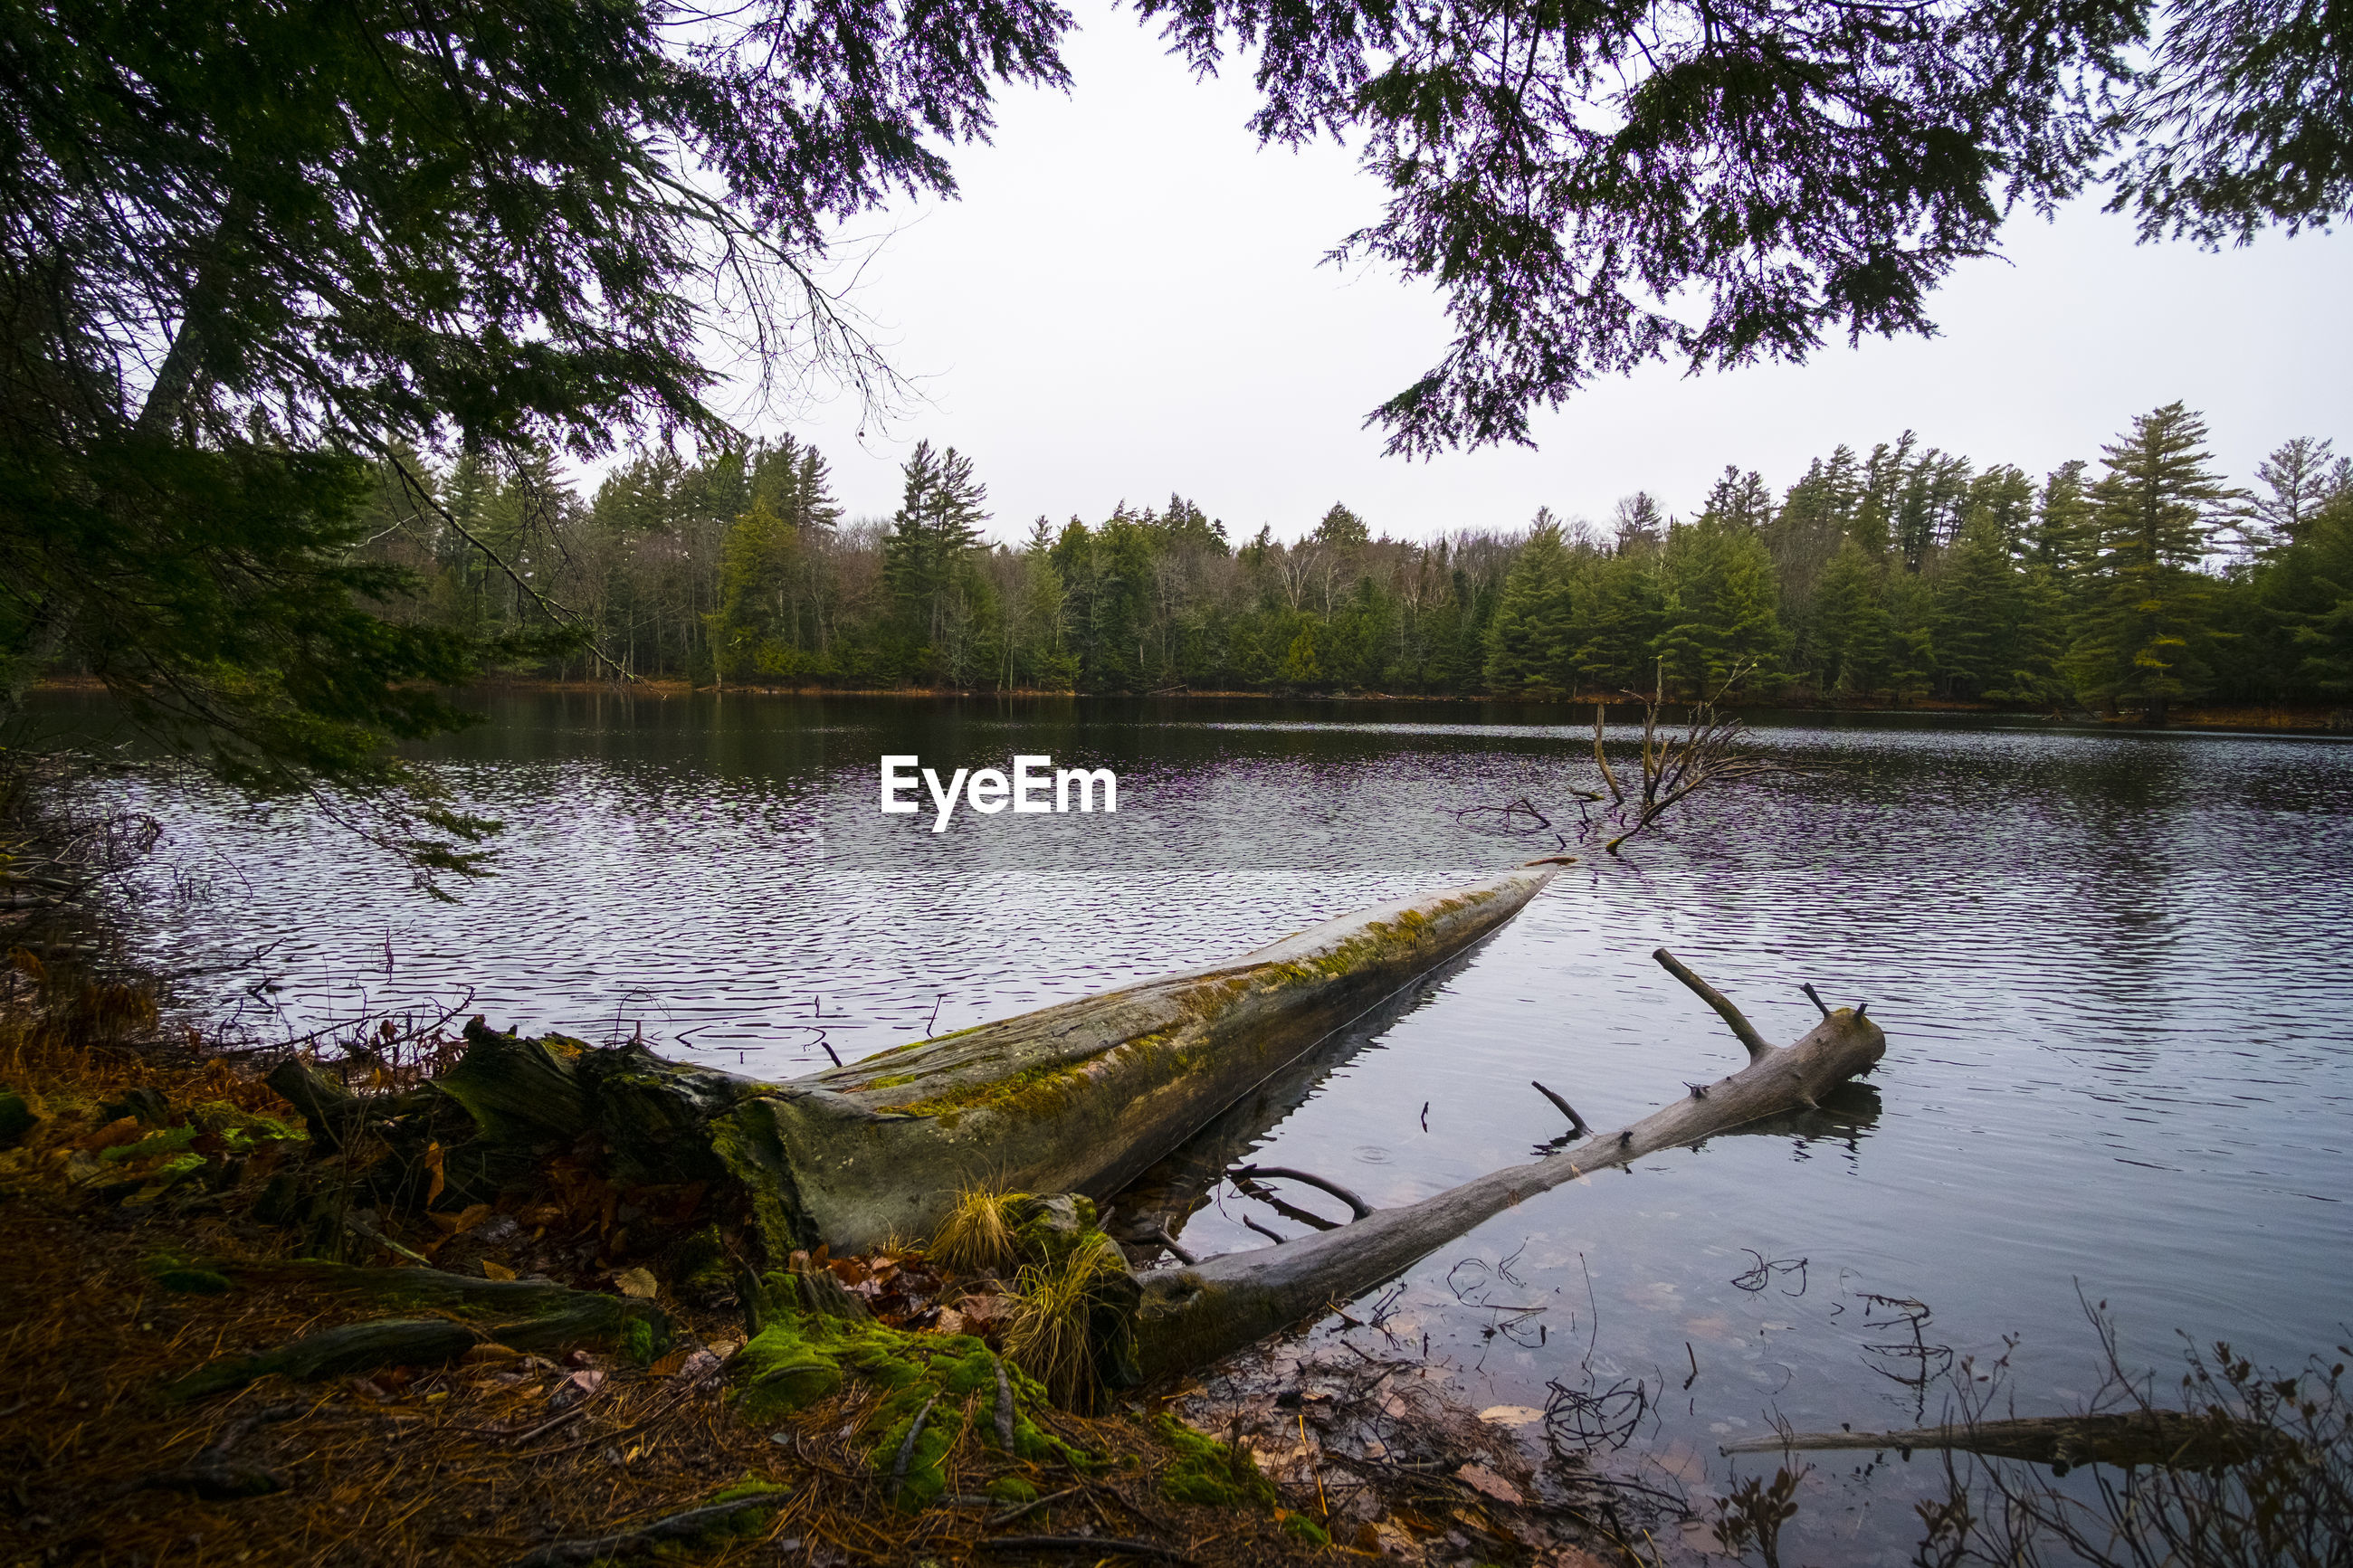 Fallen tree in river at forest against sky